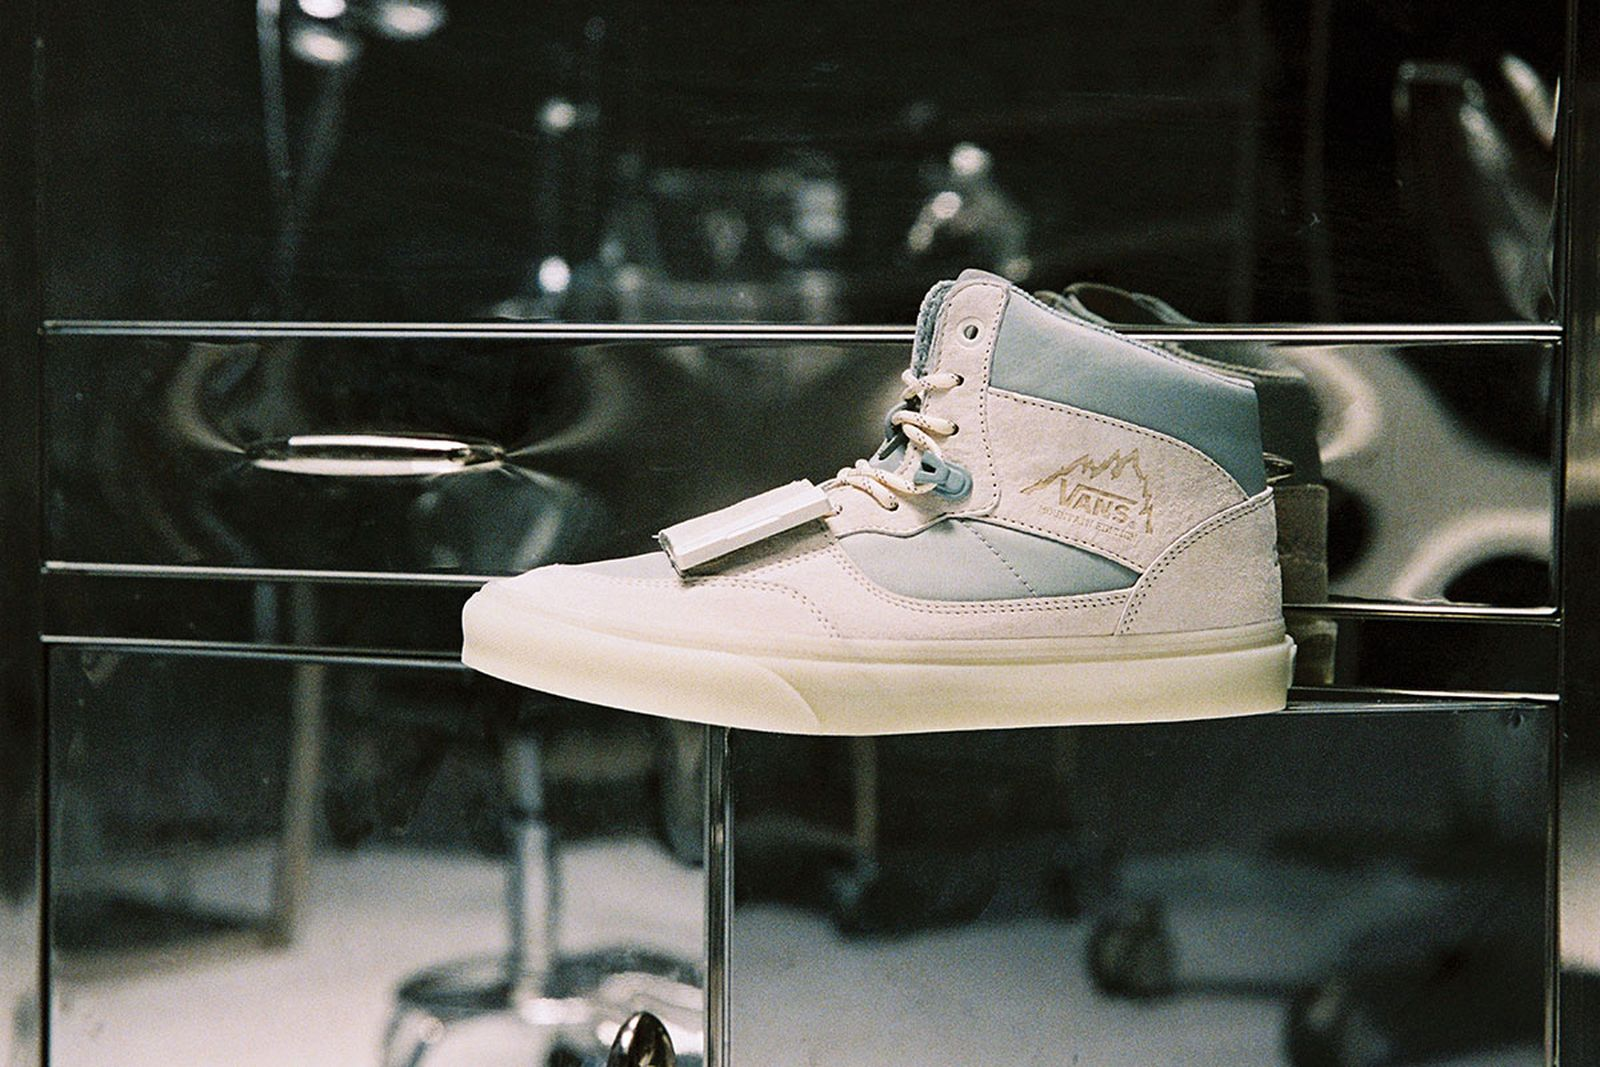 c2h4-vans-the-imagination-of-future-2-release-date-price-a-07